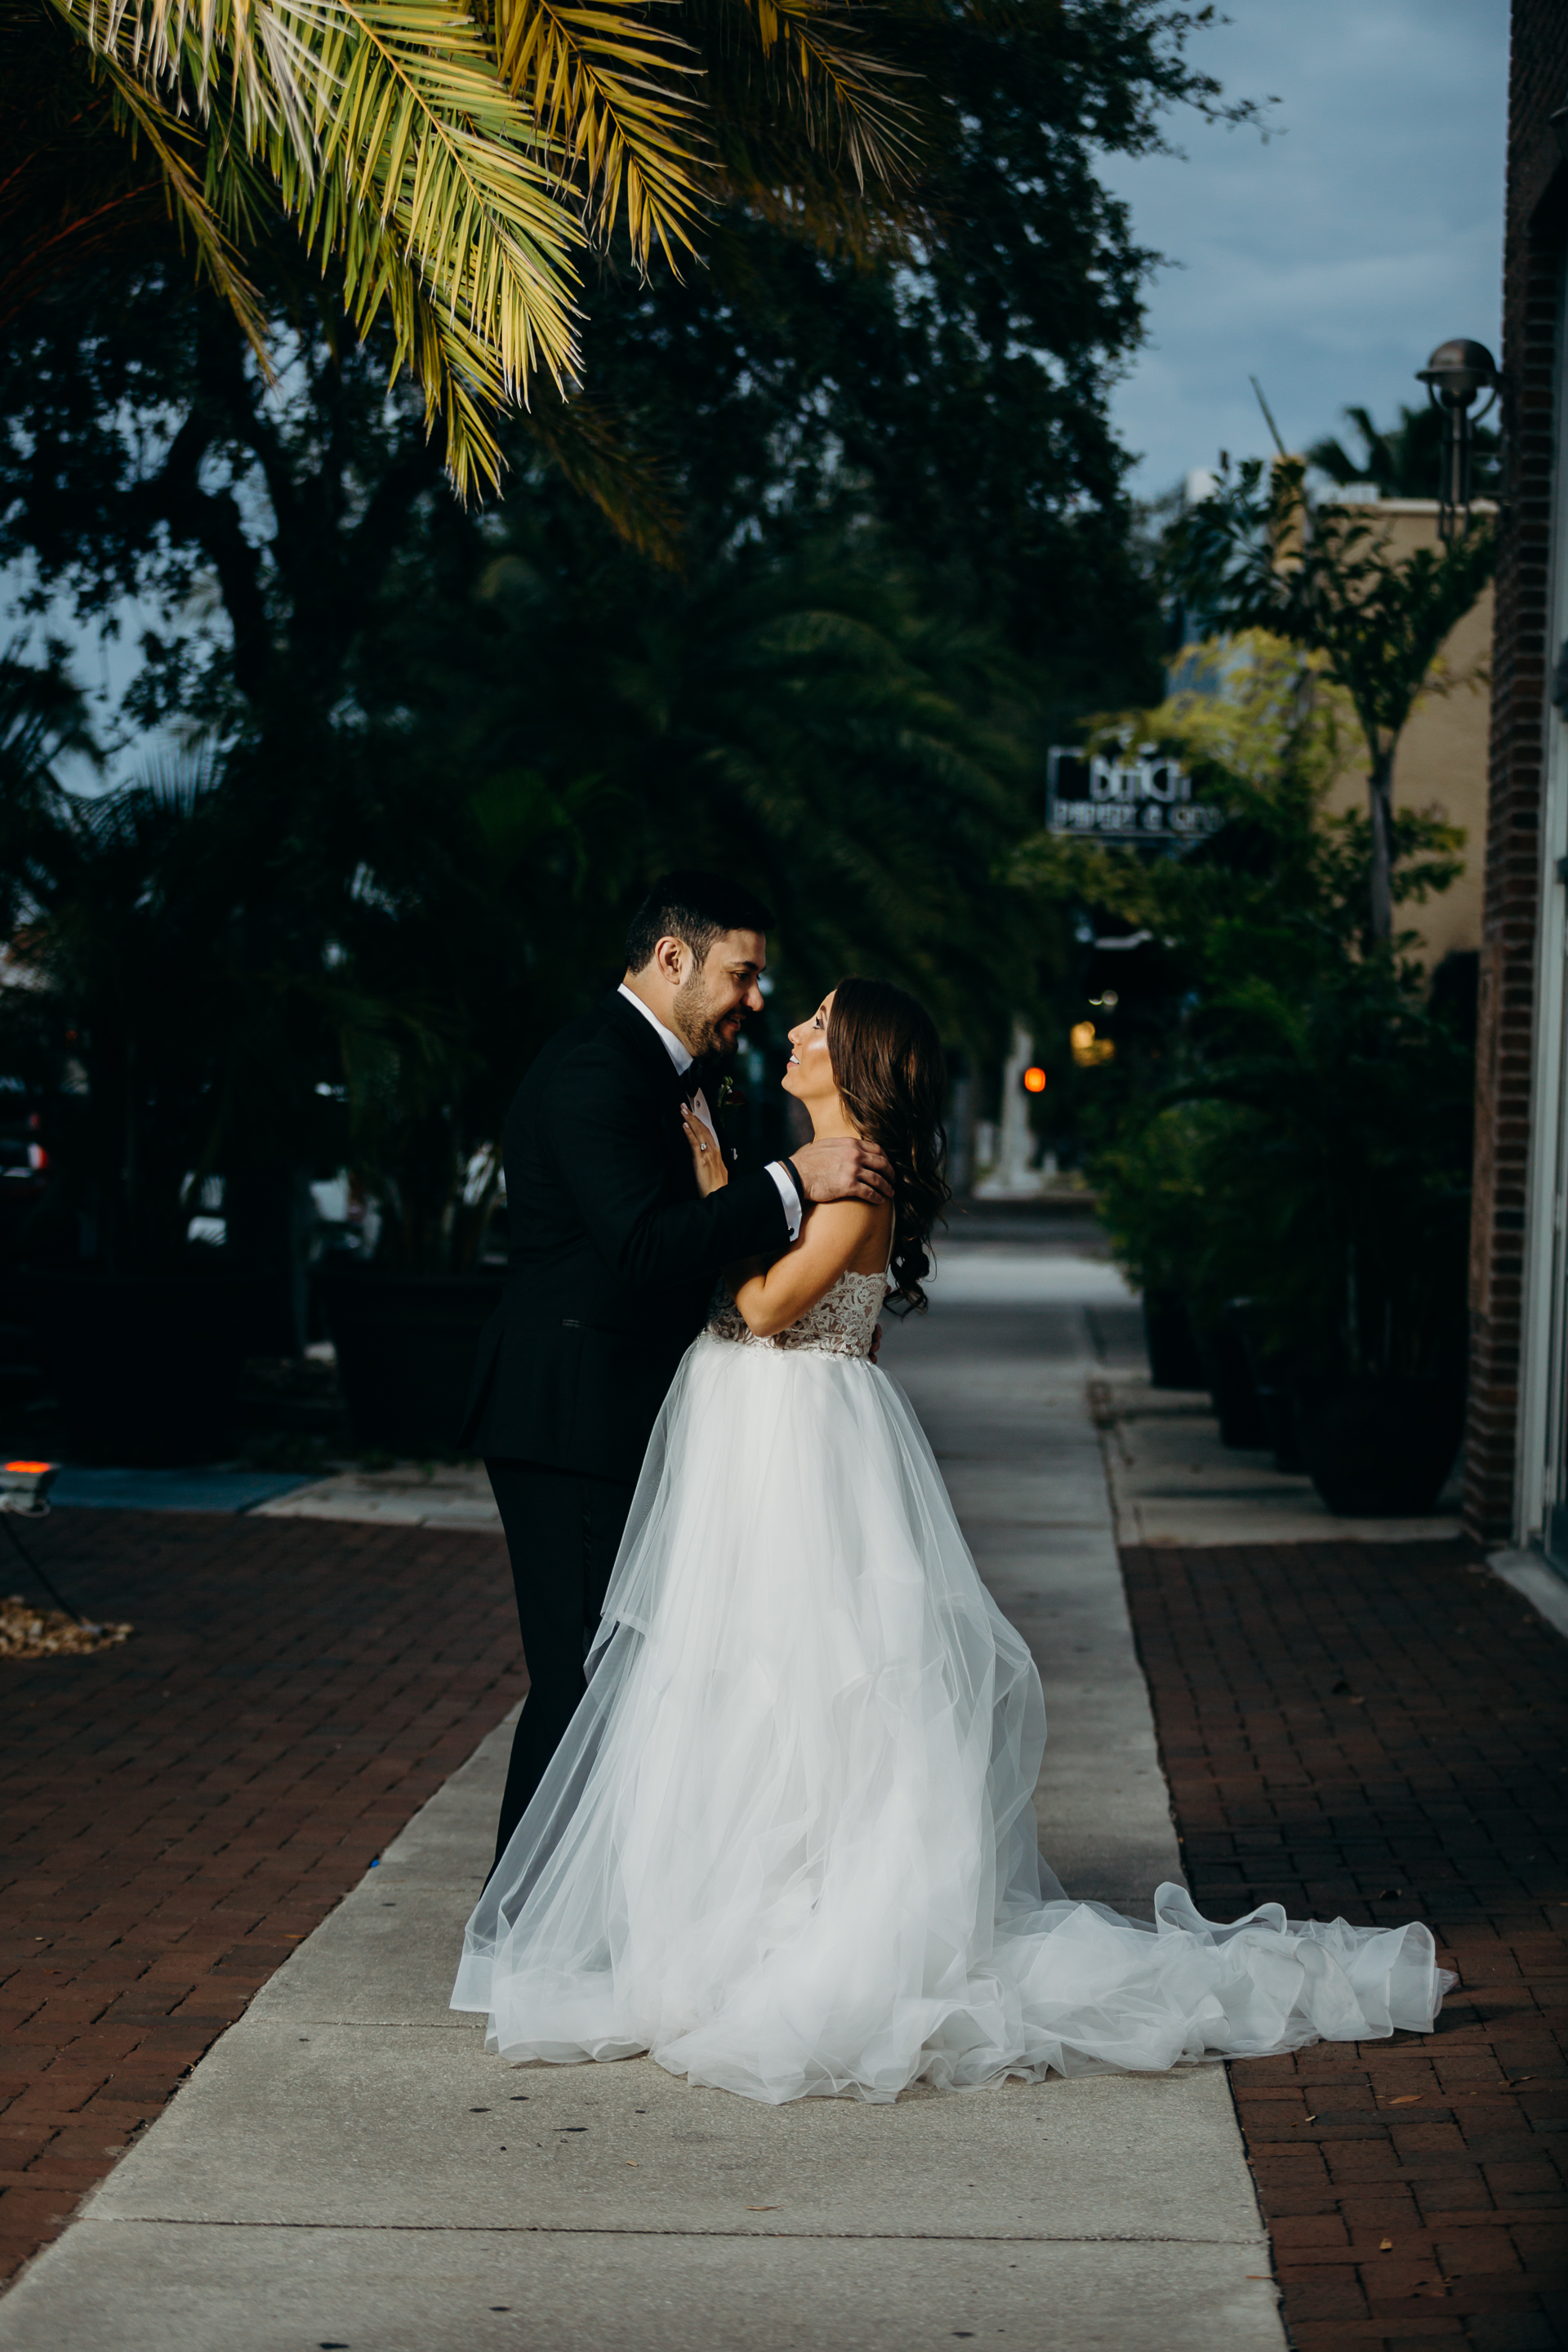 Gianna Keiko Atlanta San Francisco NYC Wedding Engagement Wedding Elopement Photographer_Sneak Peek-62.jpg